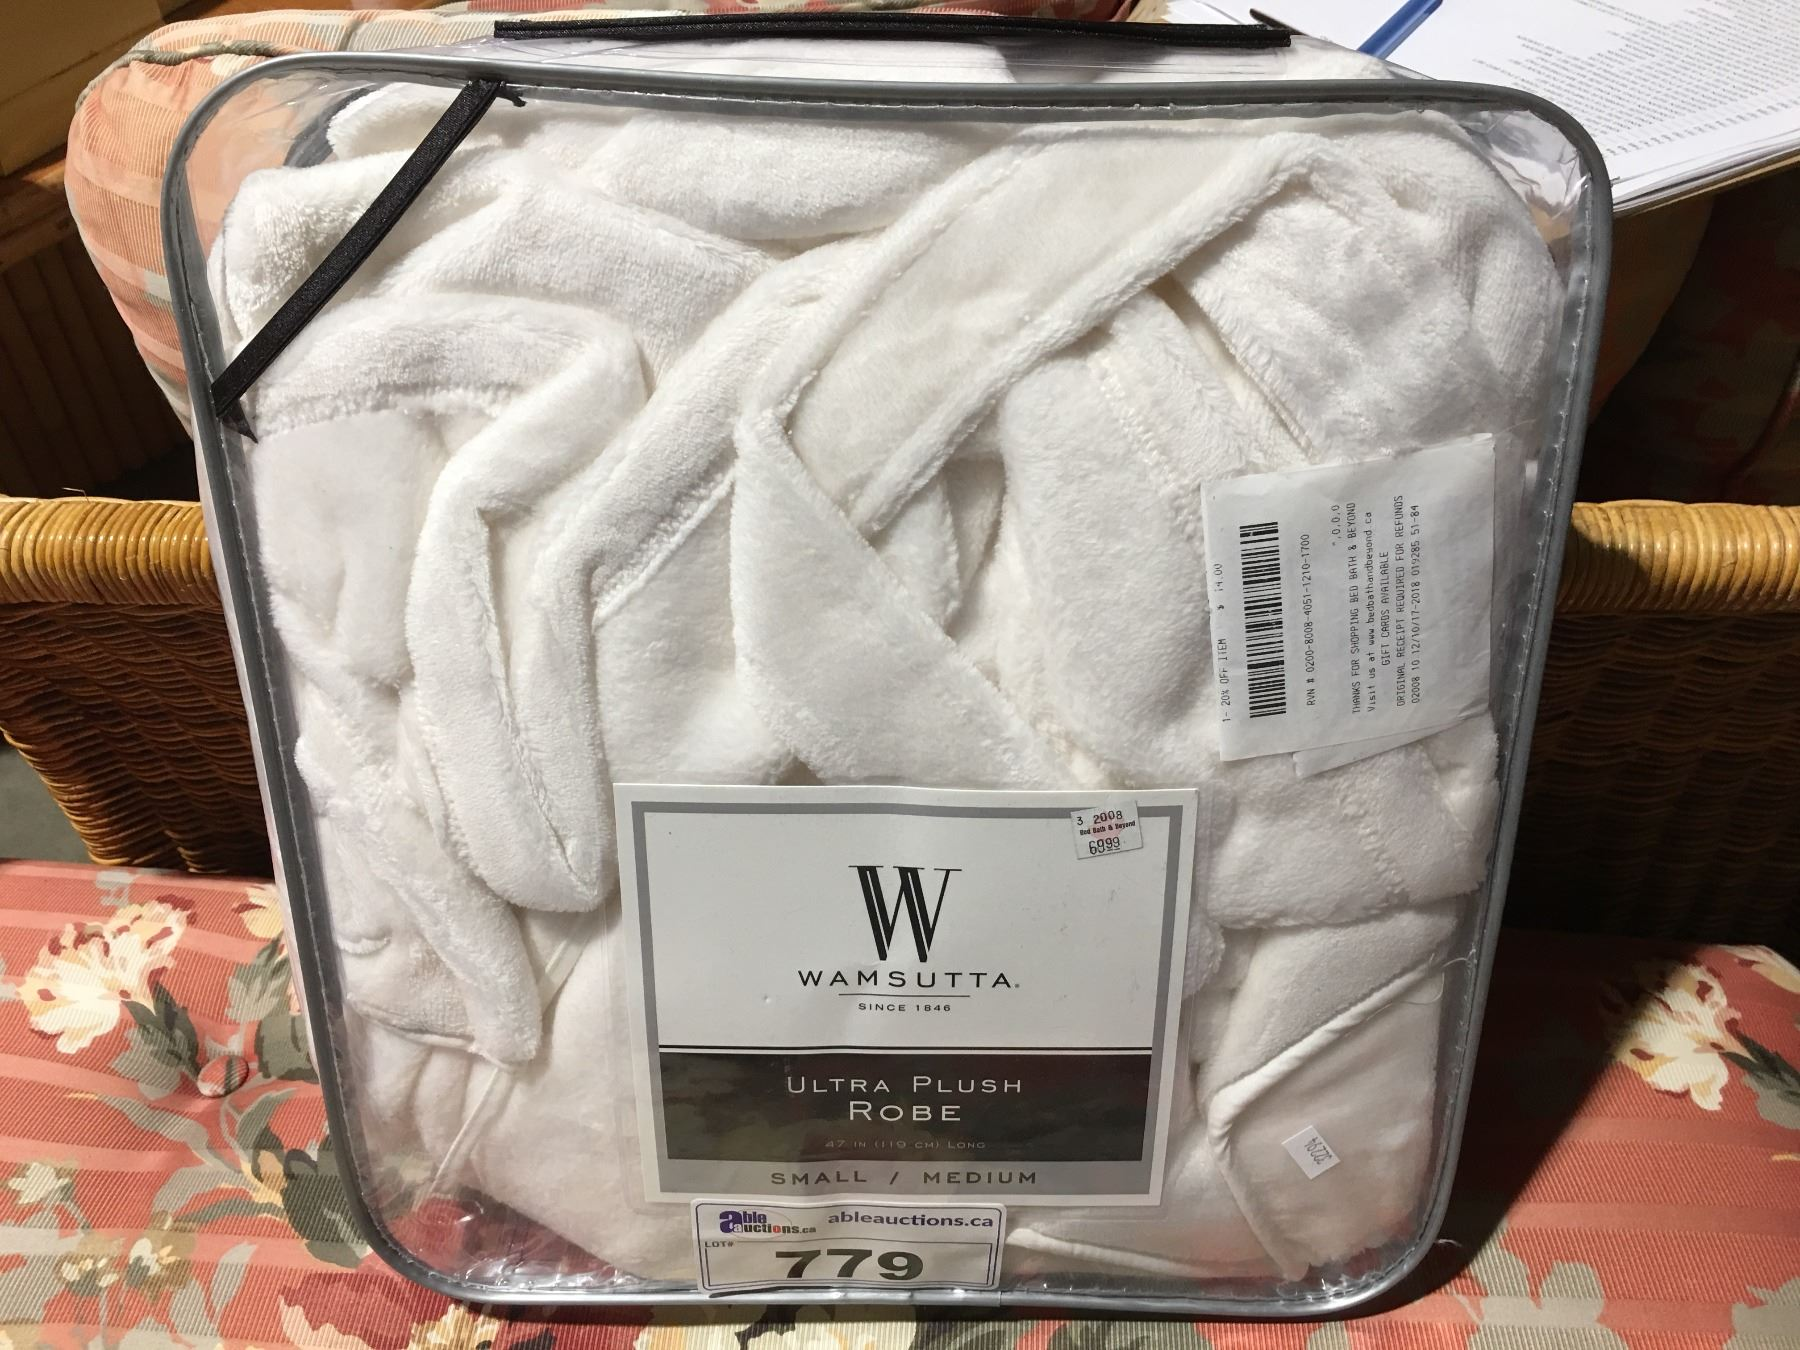 enjoy lowest price outstanding features for whole family WAMSUTTA ULTRA PLUSH ROBE SIZE S/M